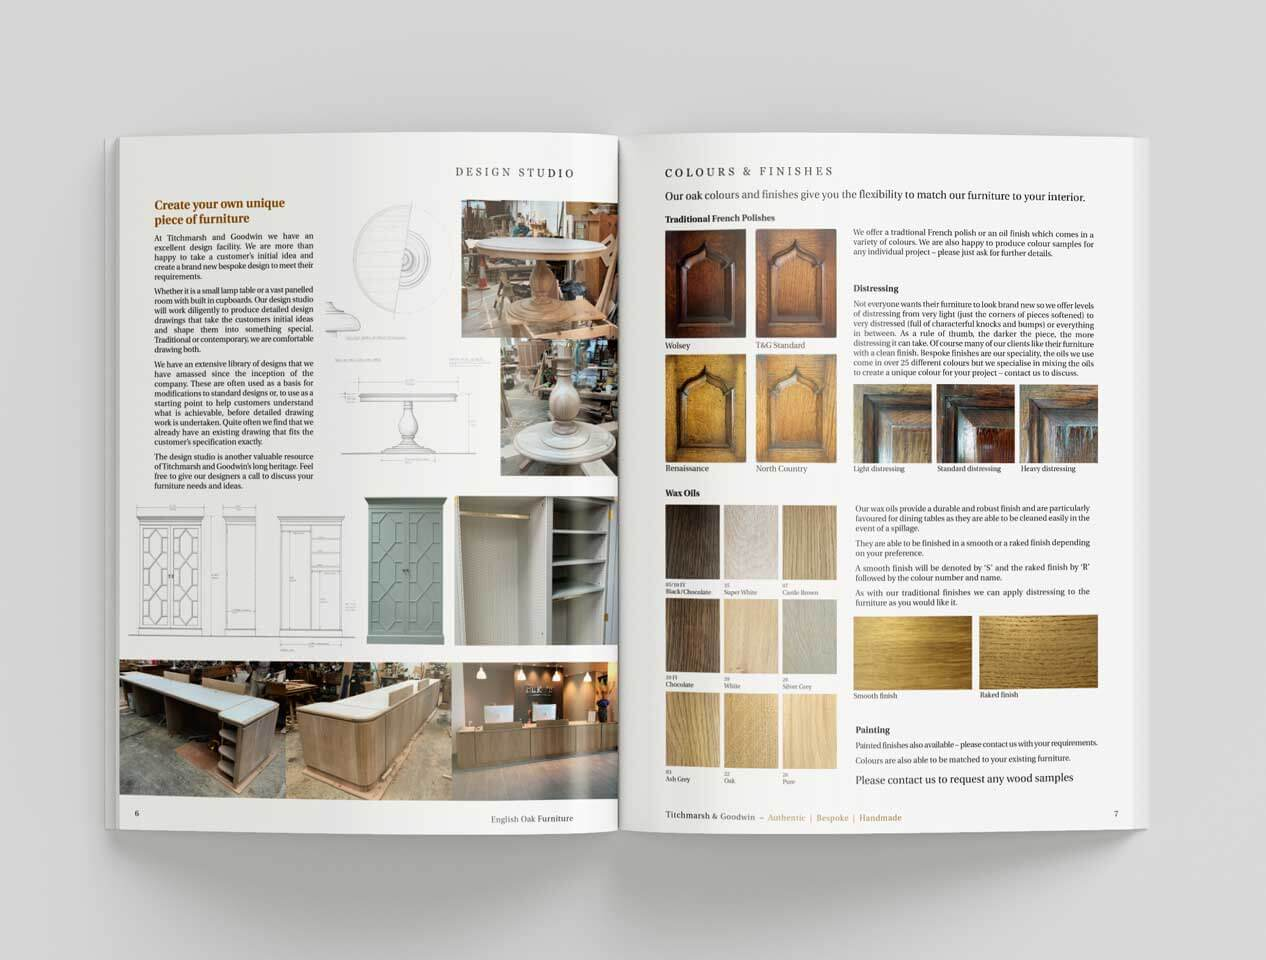 Image showing another internal page for the Titchmarsh and Goodwin furniture catalogue with wood samples